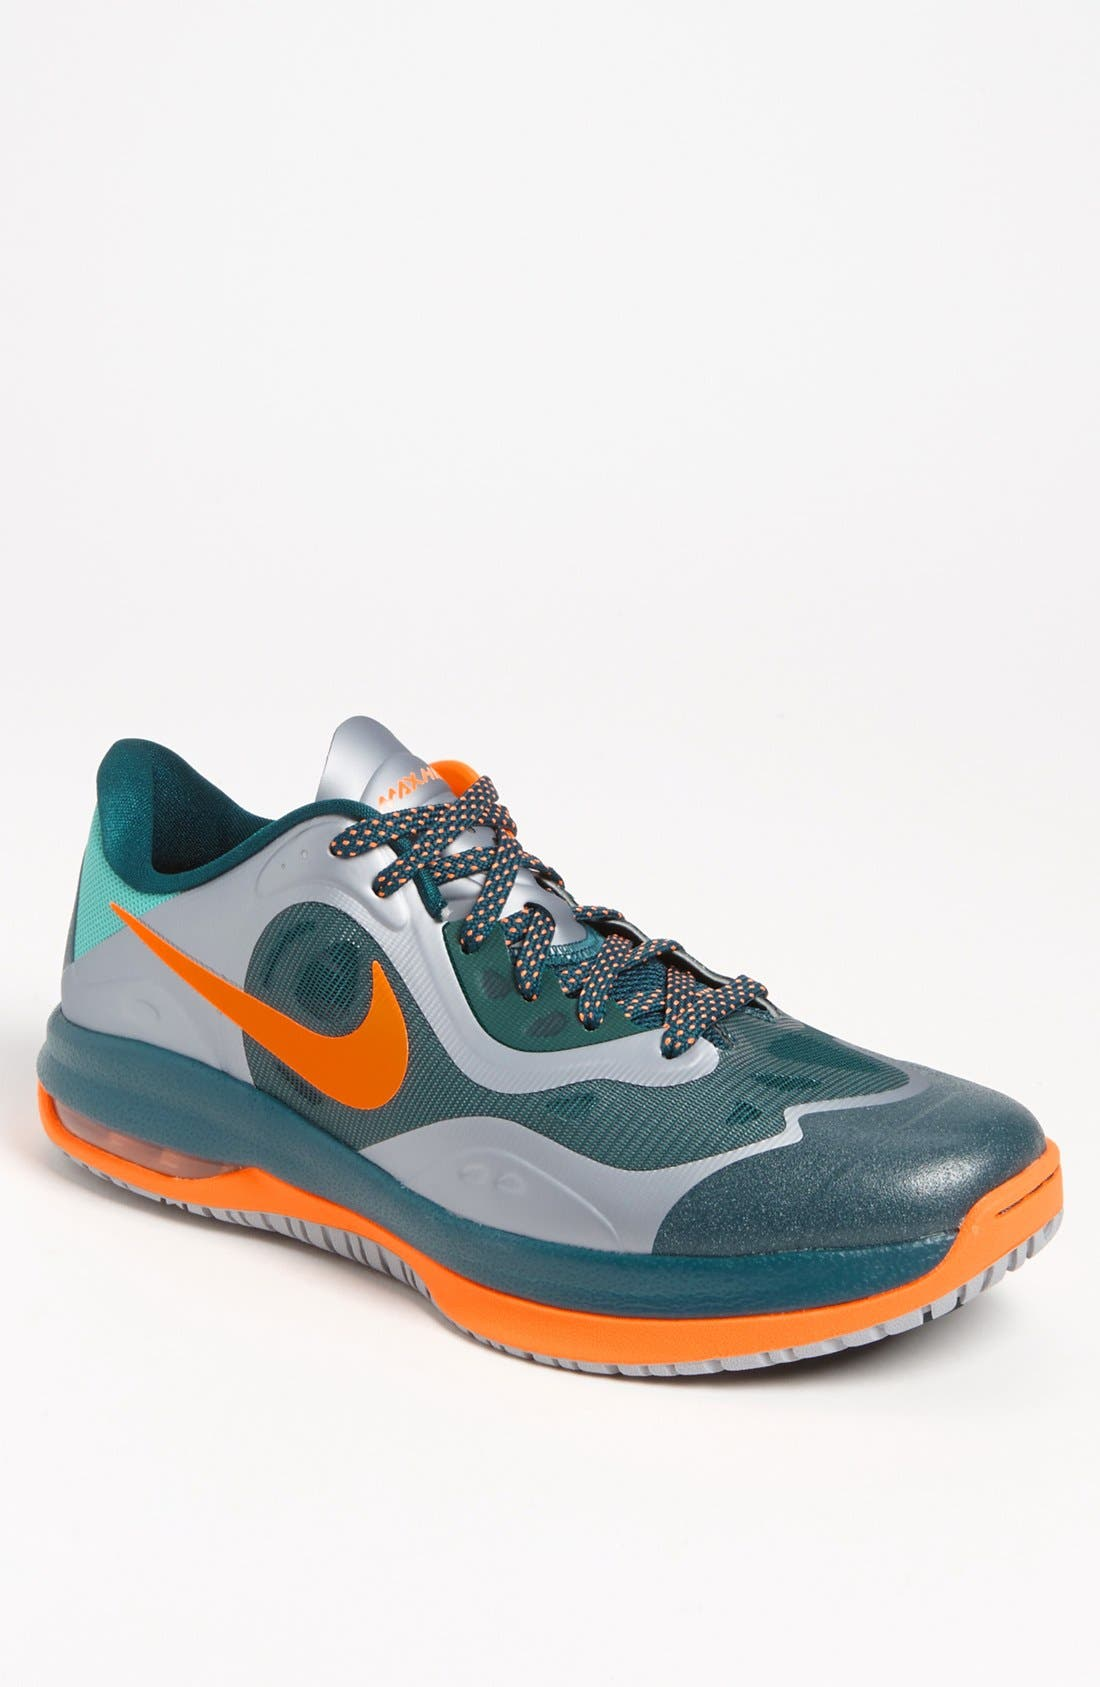 Alternate Image 1 Selected - Nike 'Max H.A.M. Low' Basketball Shoe (Men)